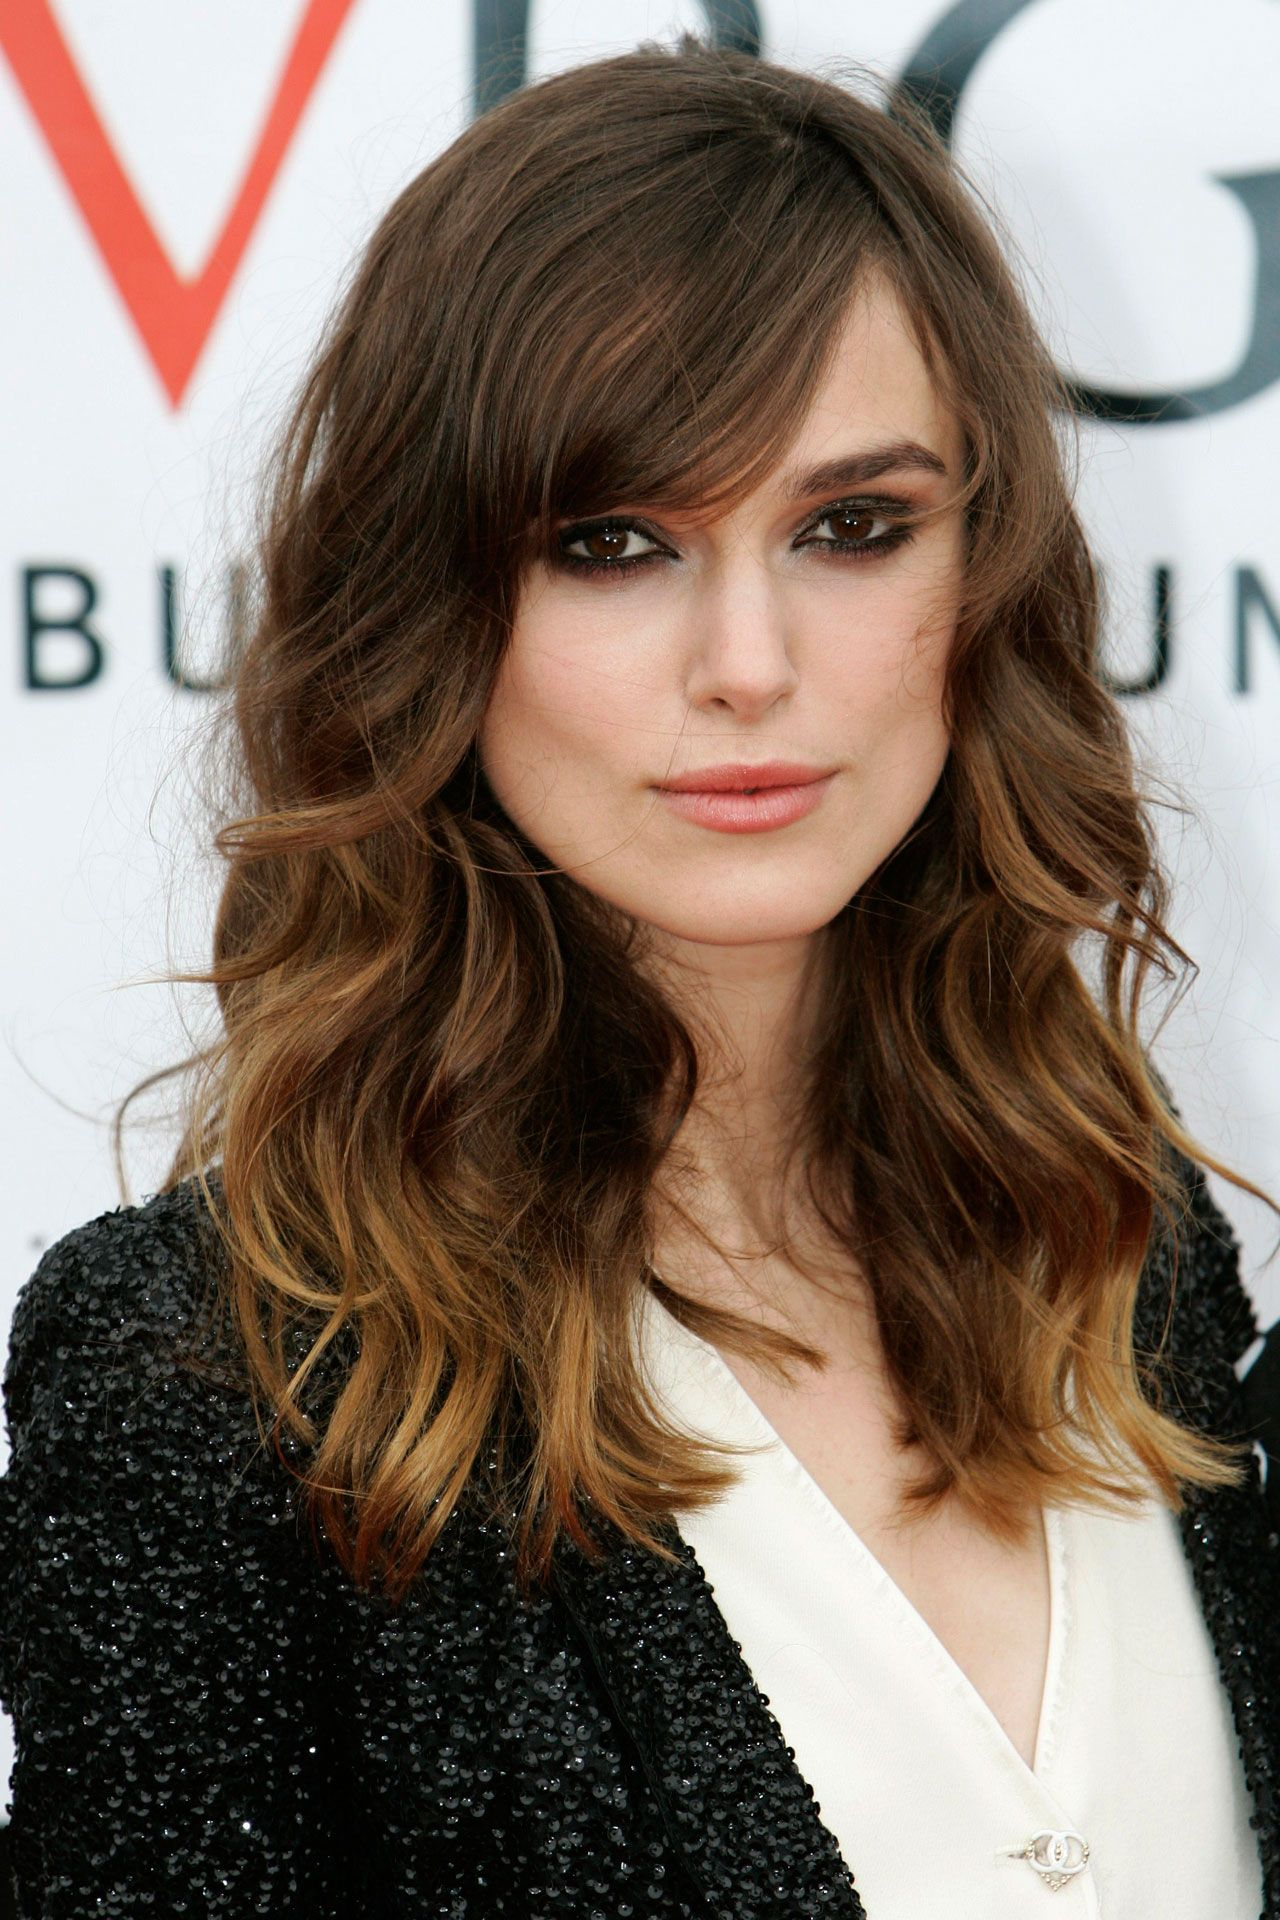 Keira Knightley Look Book Square Face Hairstyles Haircut For Square Face Long Wavy Haircuts